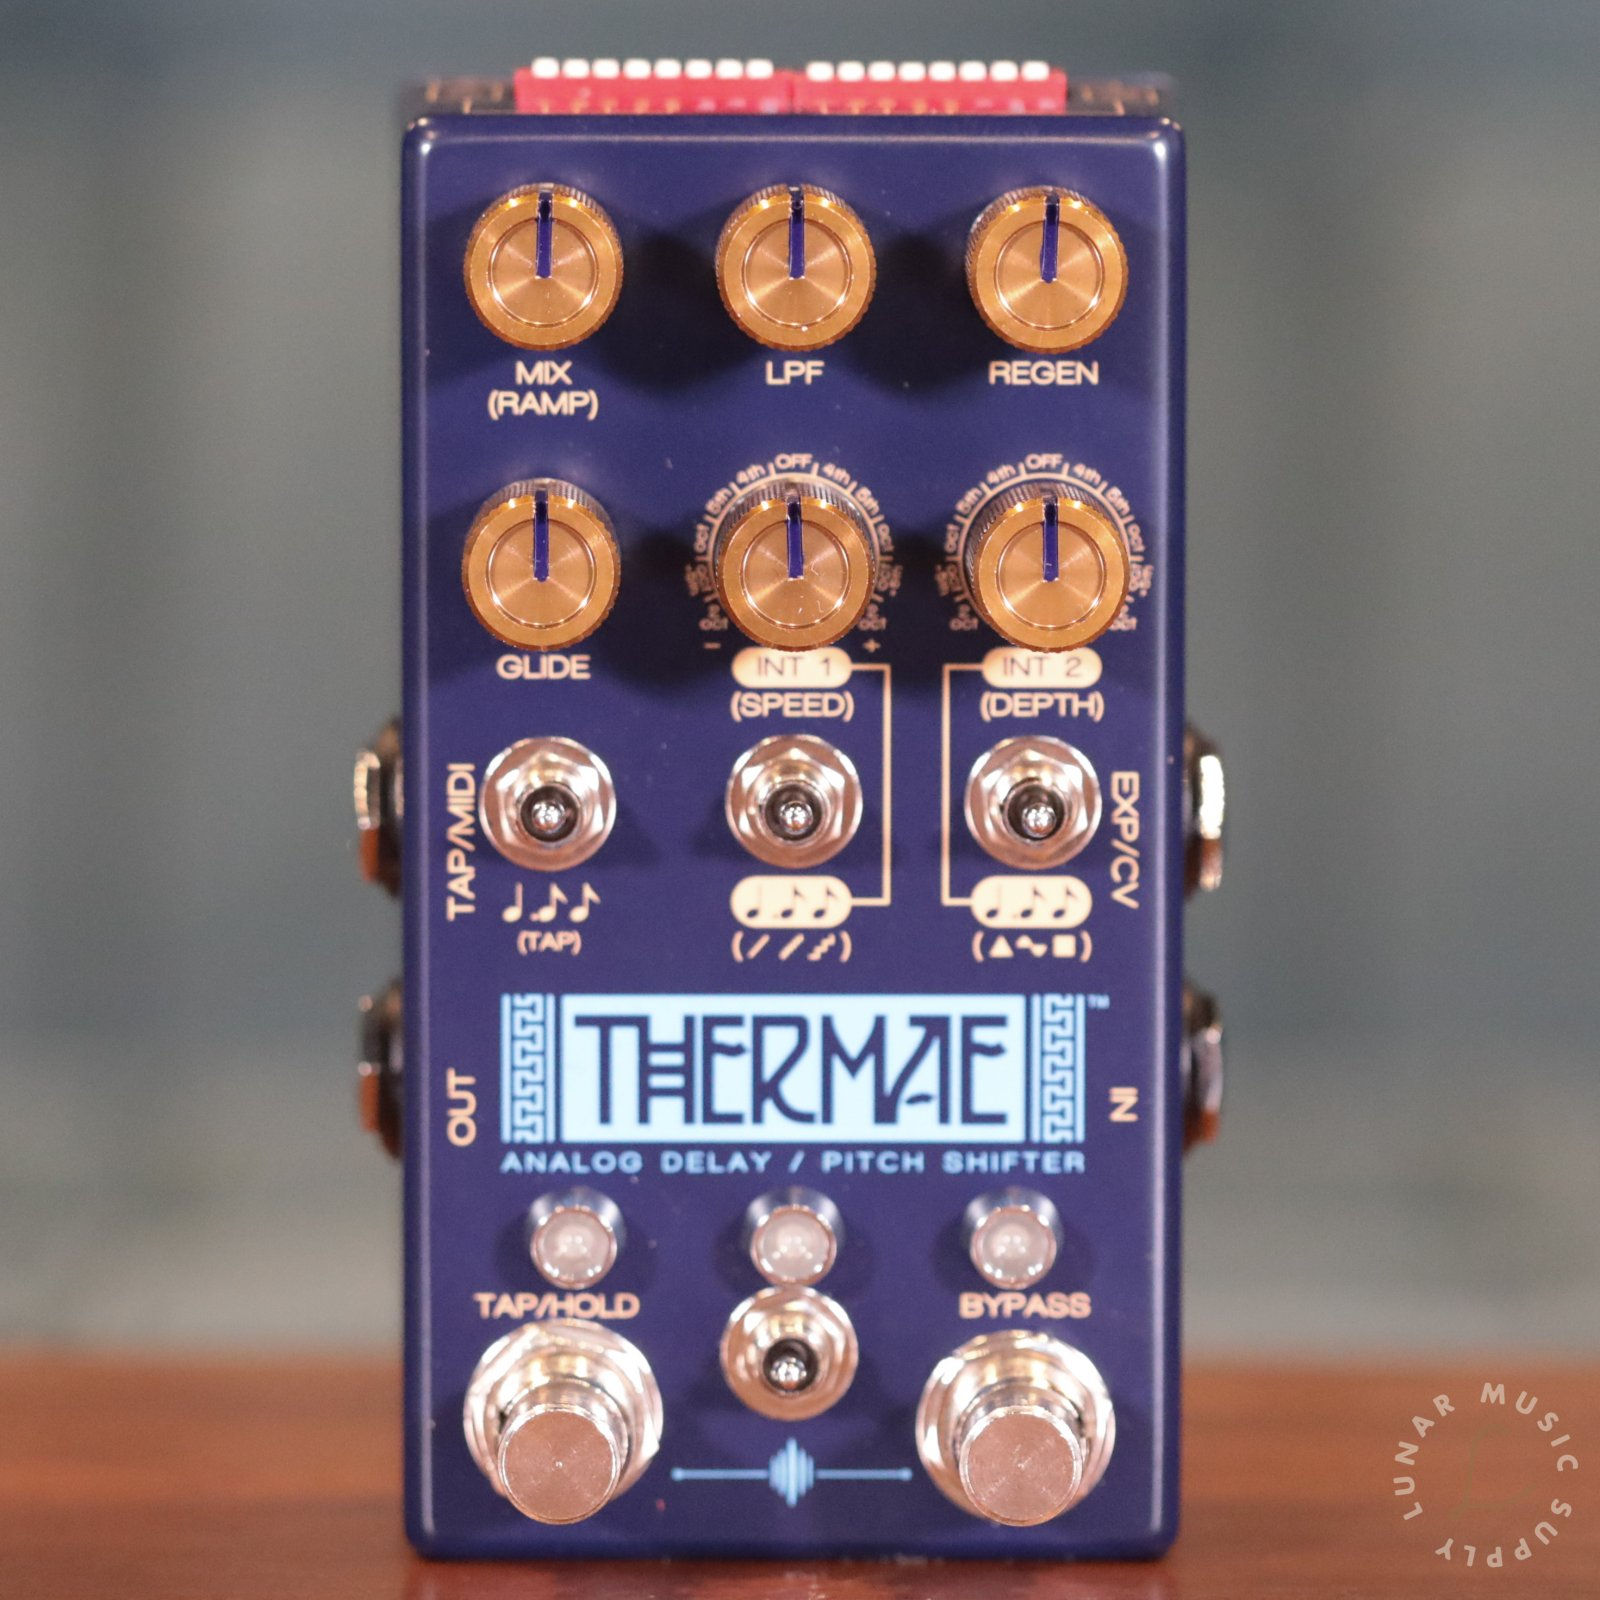 Chase Bliss Audio Thermae: Analog Delay / Pitch Shifter Guitar Pedal